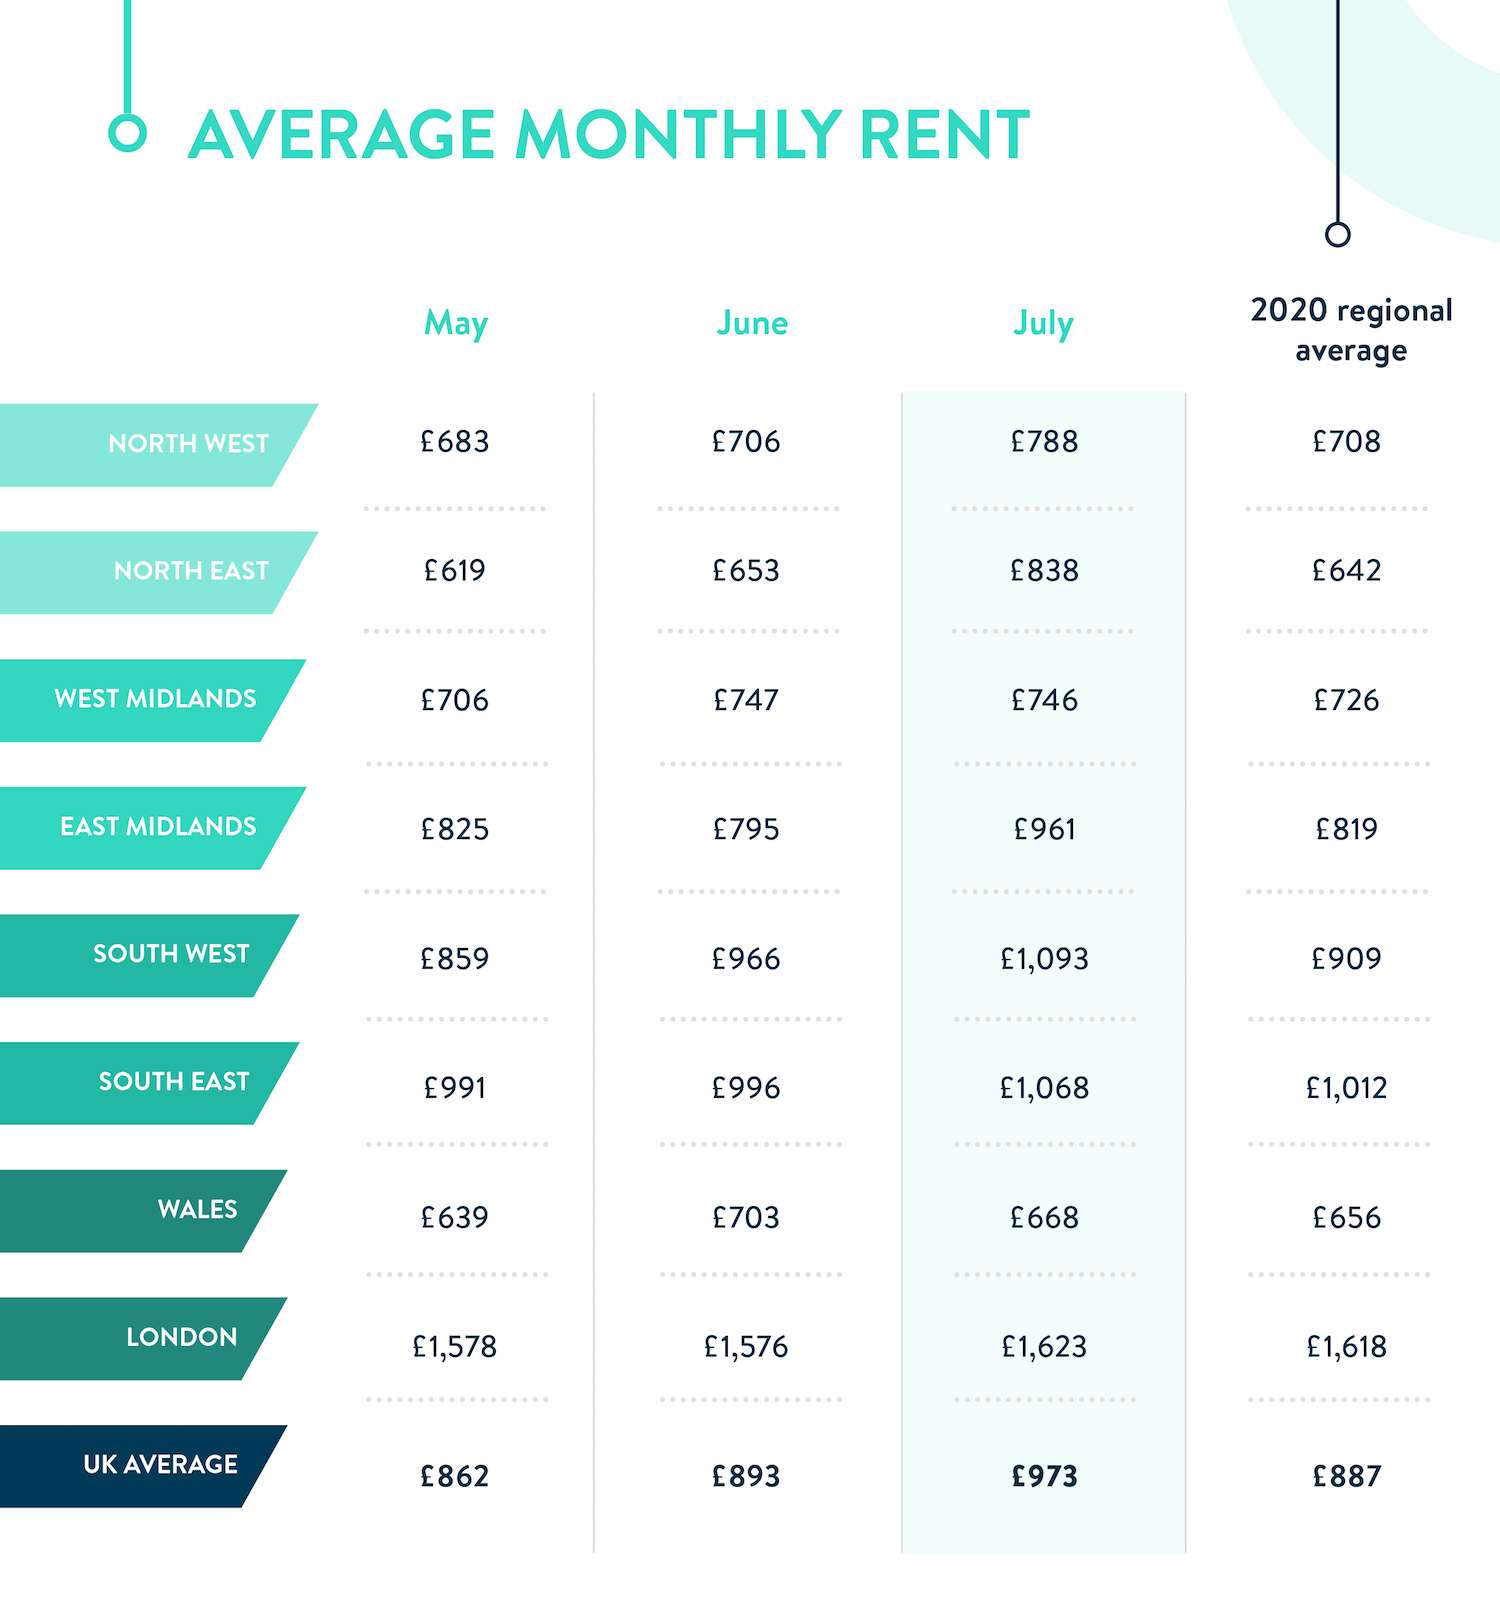 Goodlord_Rental_Index_July_Rents